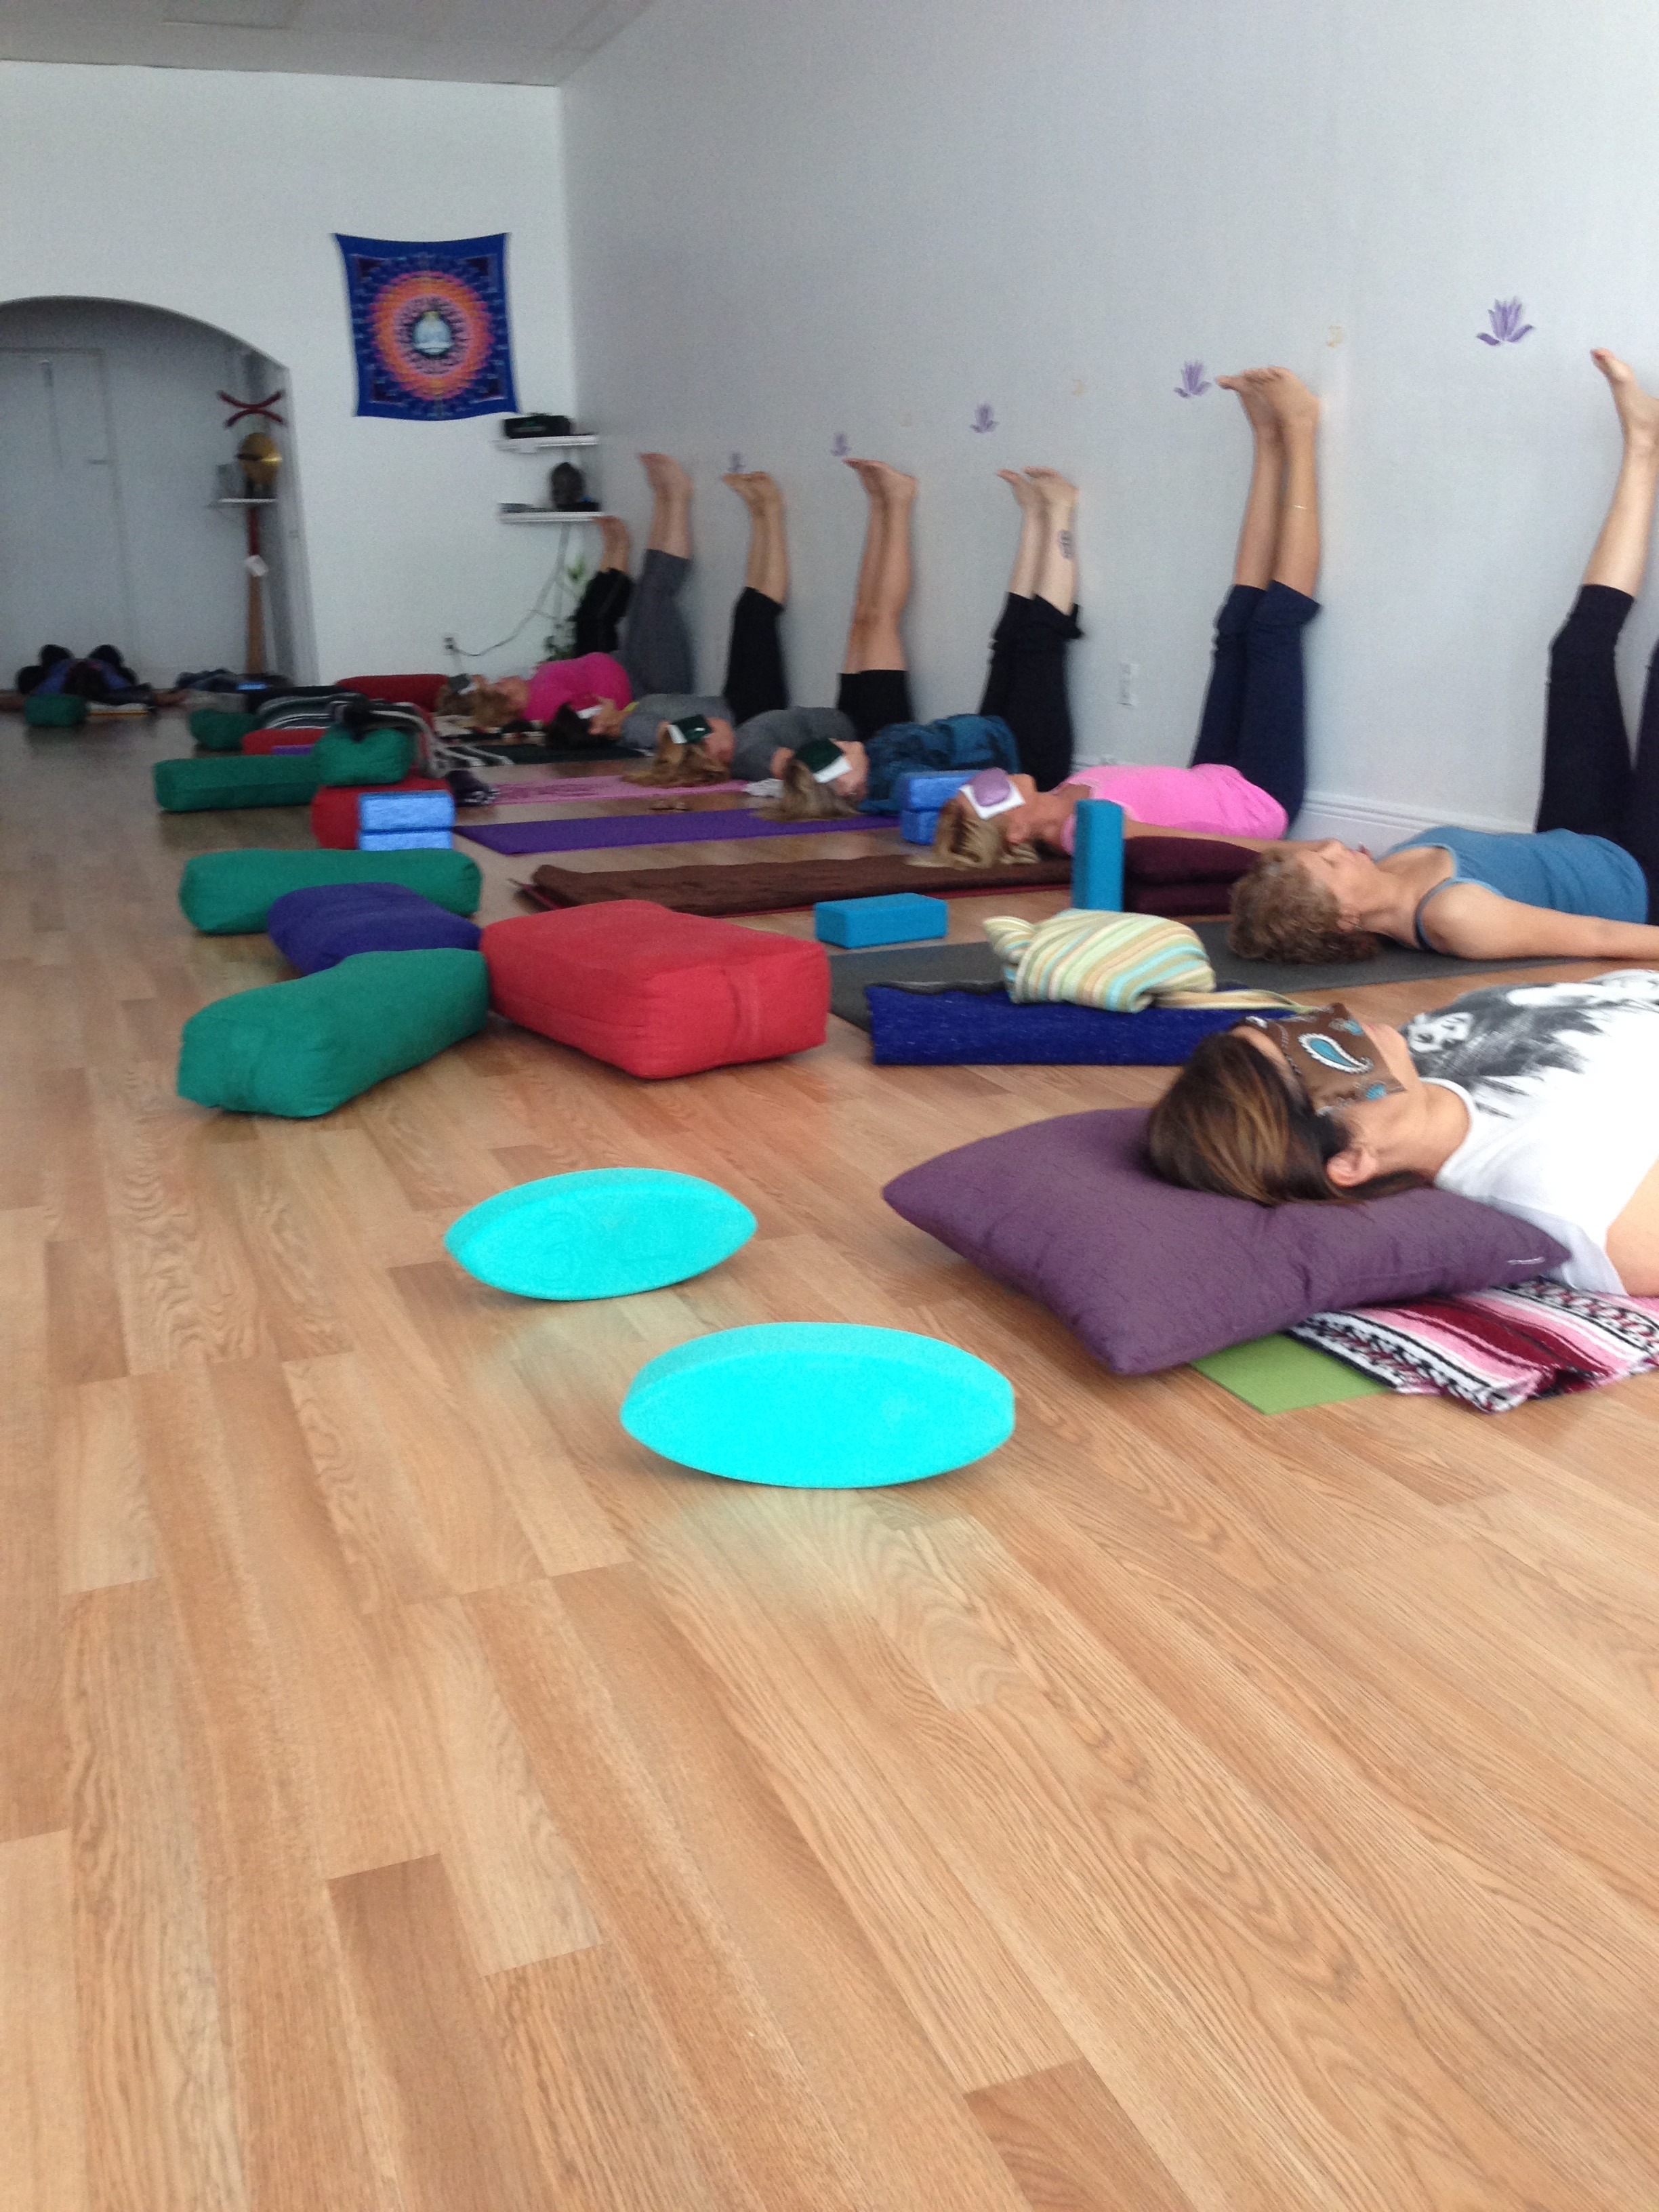 Yoga Studio, Delray beach, Florida